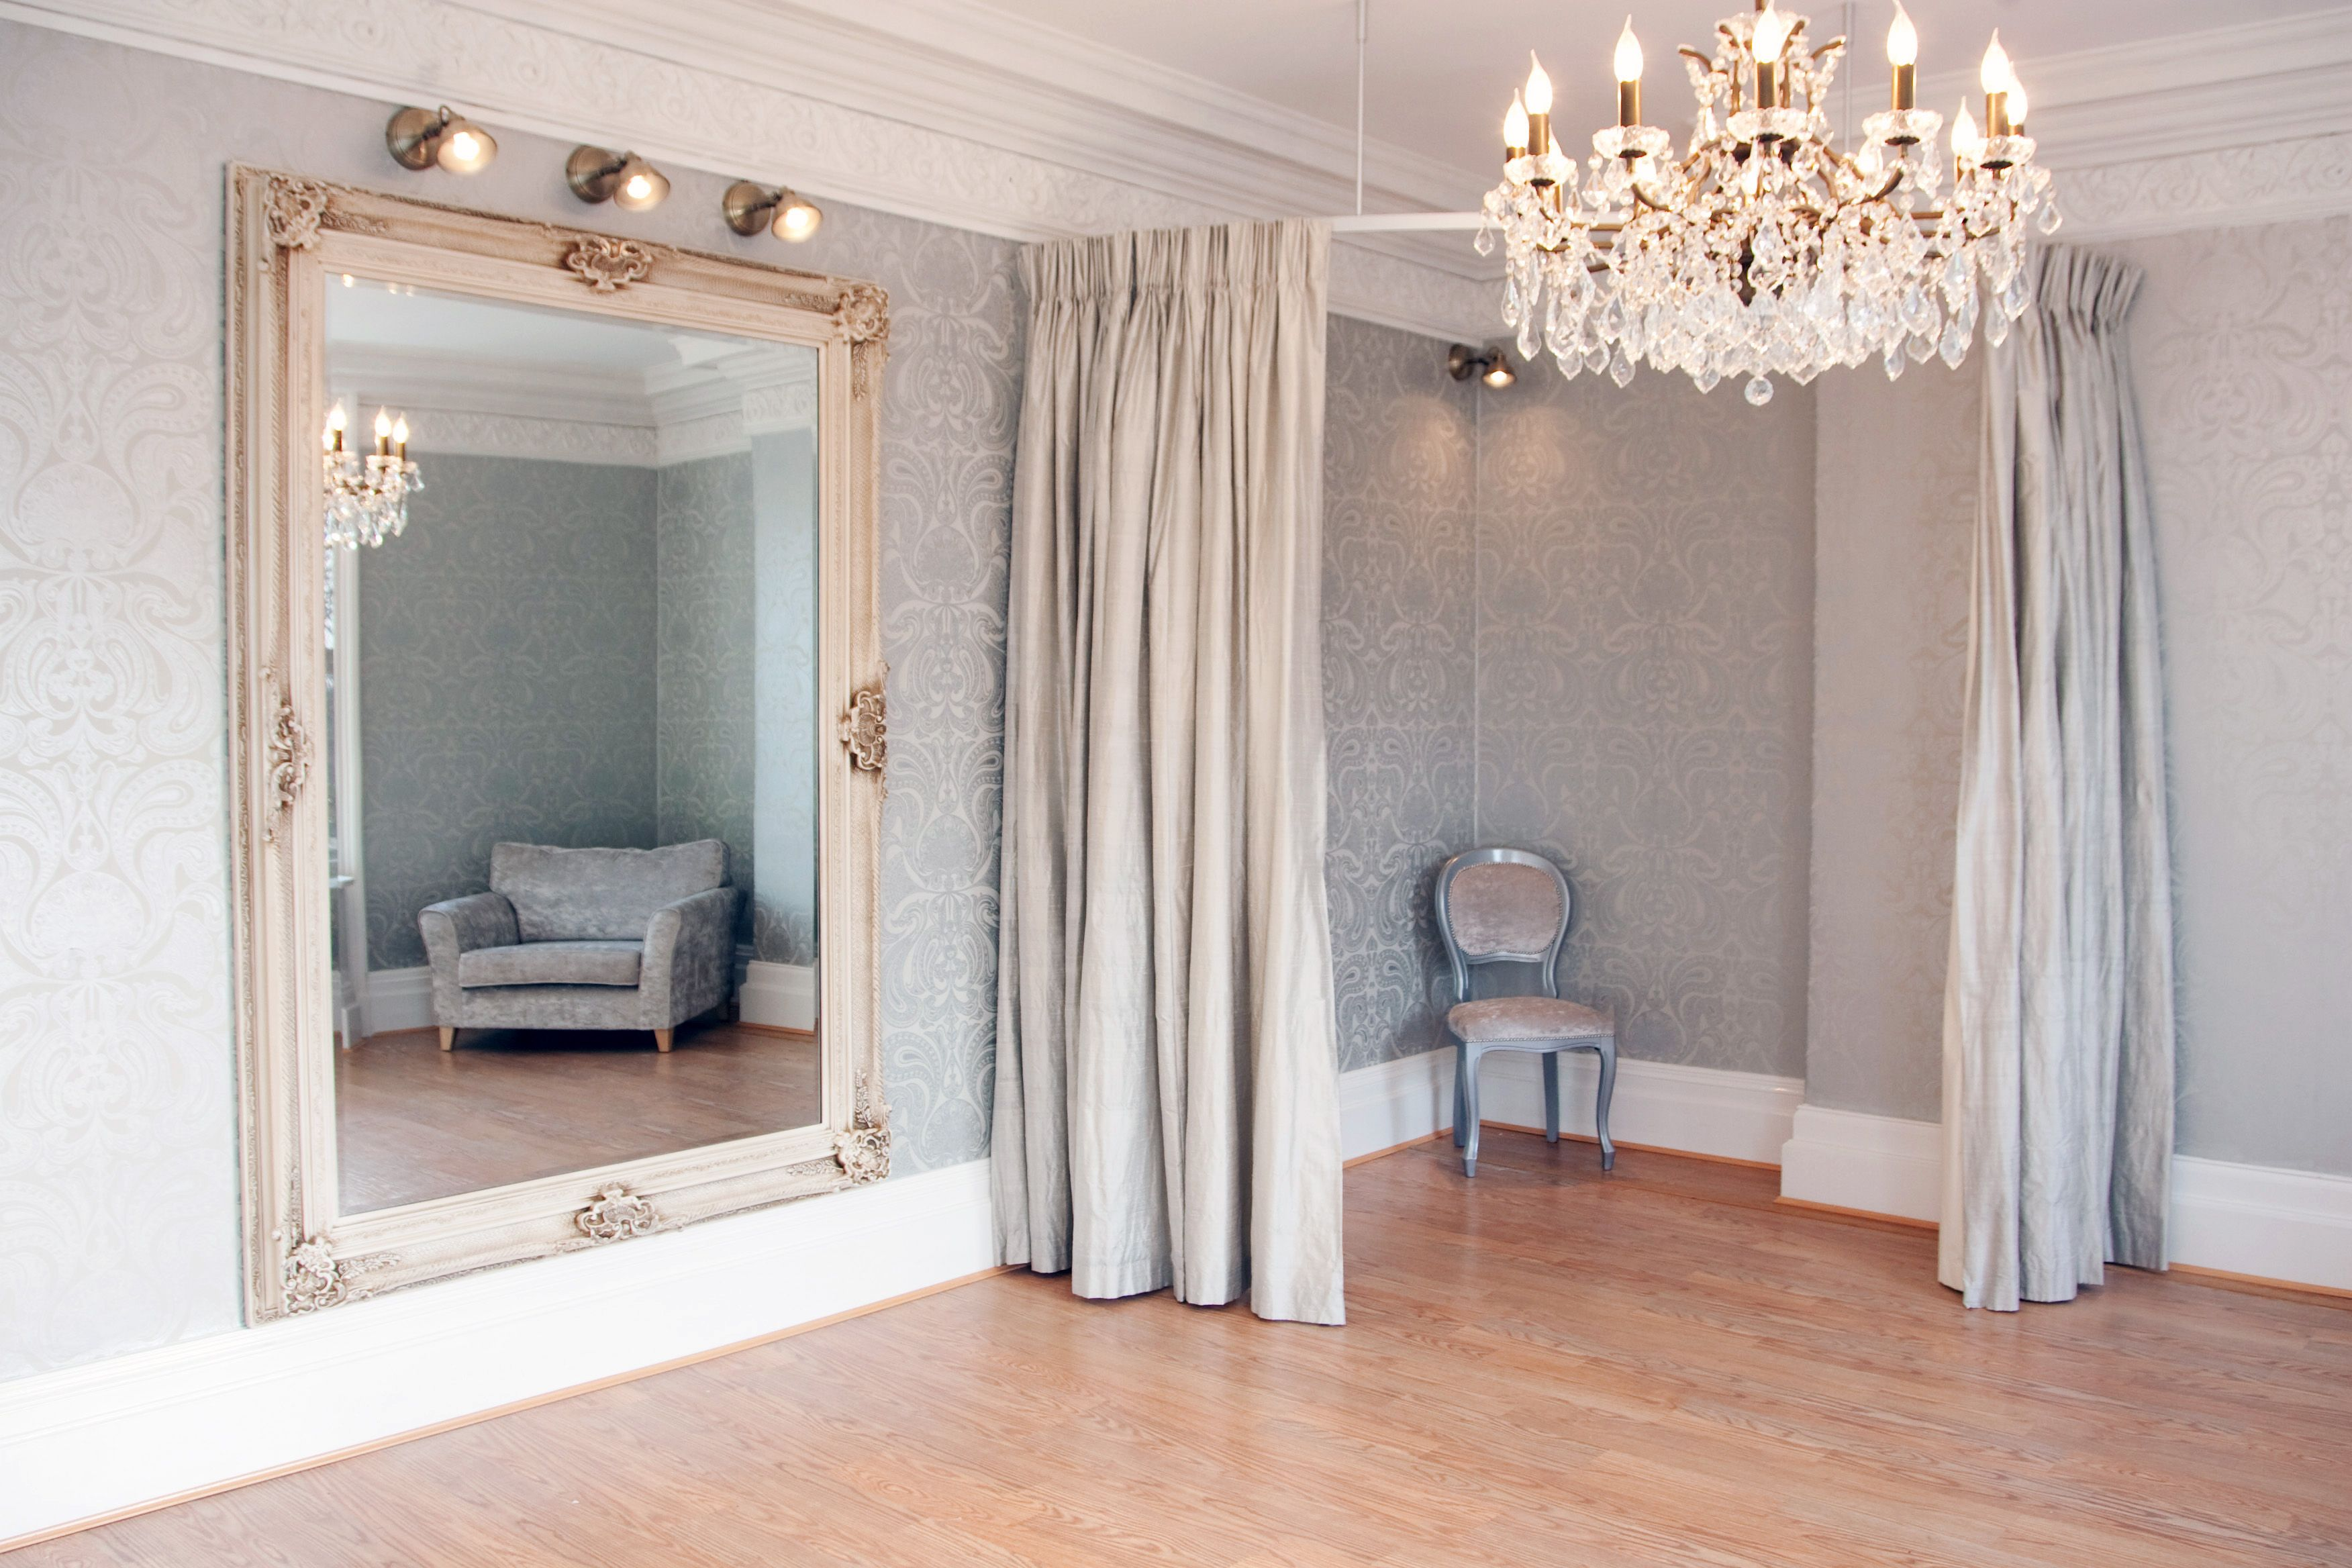 Gorgeous Bridal Boutique Interior! A stunning dressing room